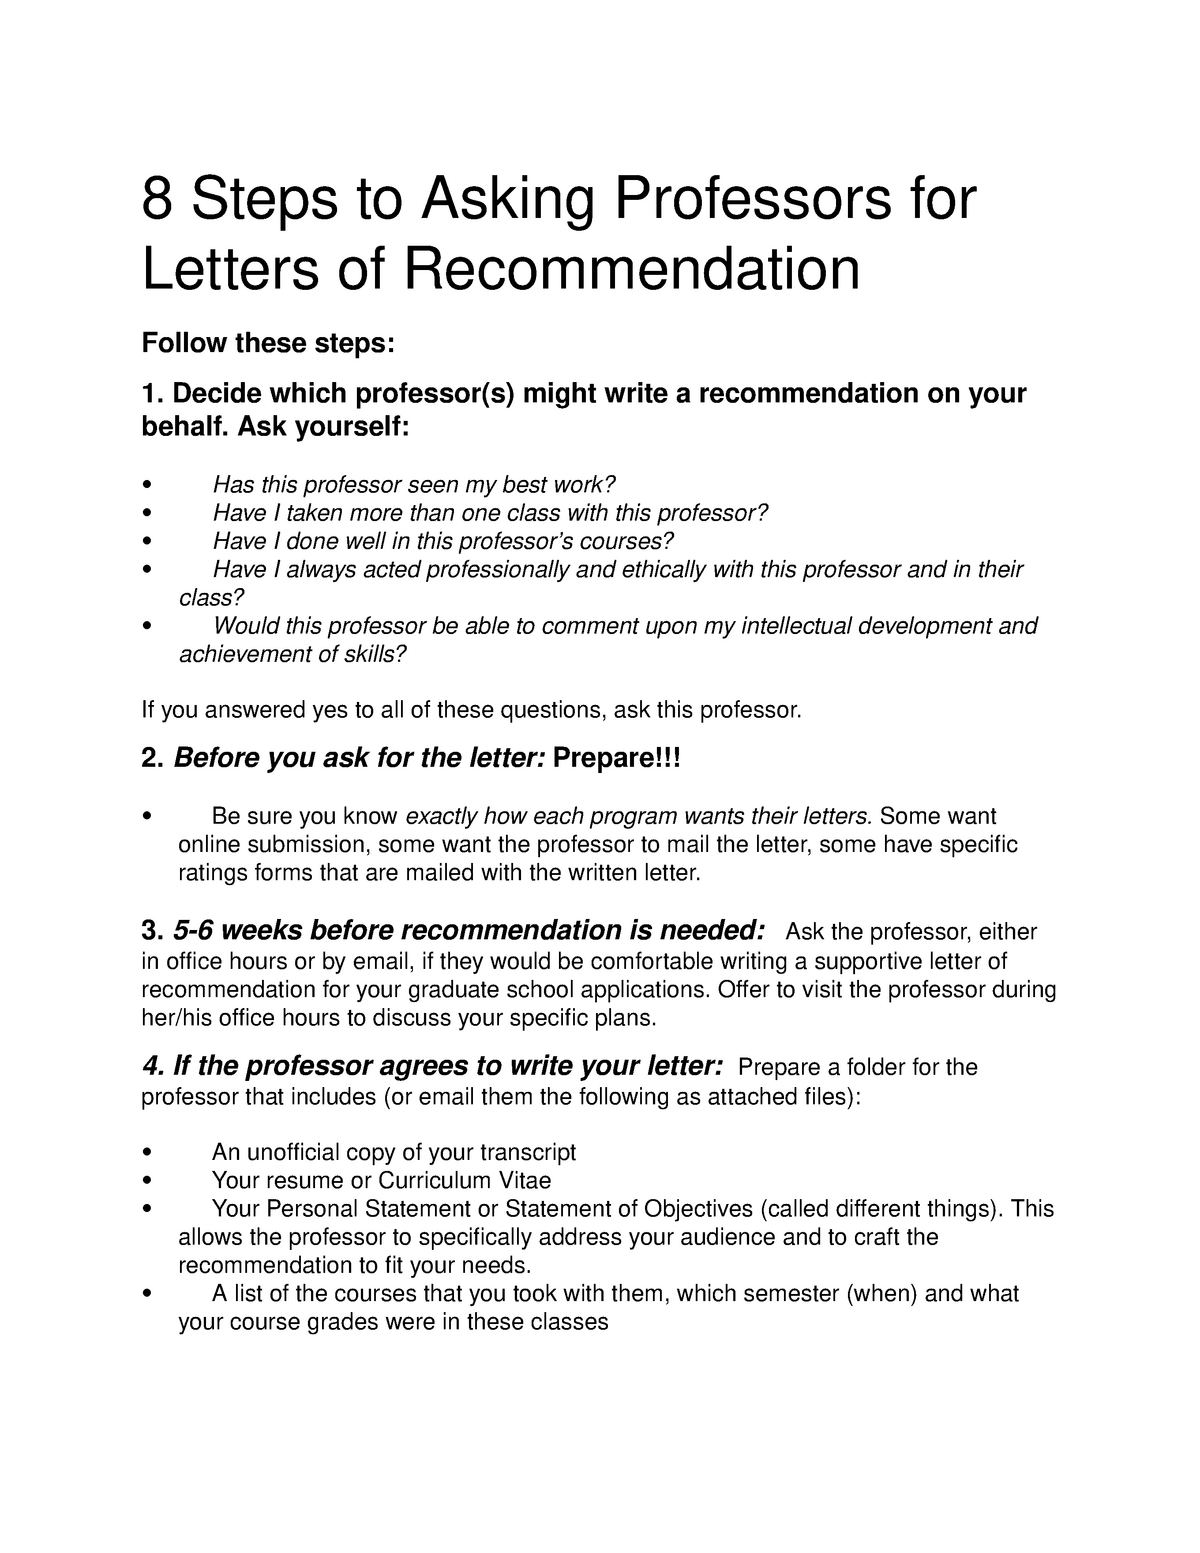 How to ask for a letter of recommendation - PSY 3074 - UCF